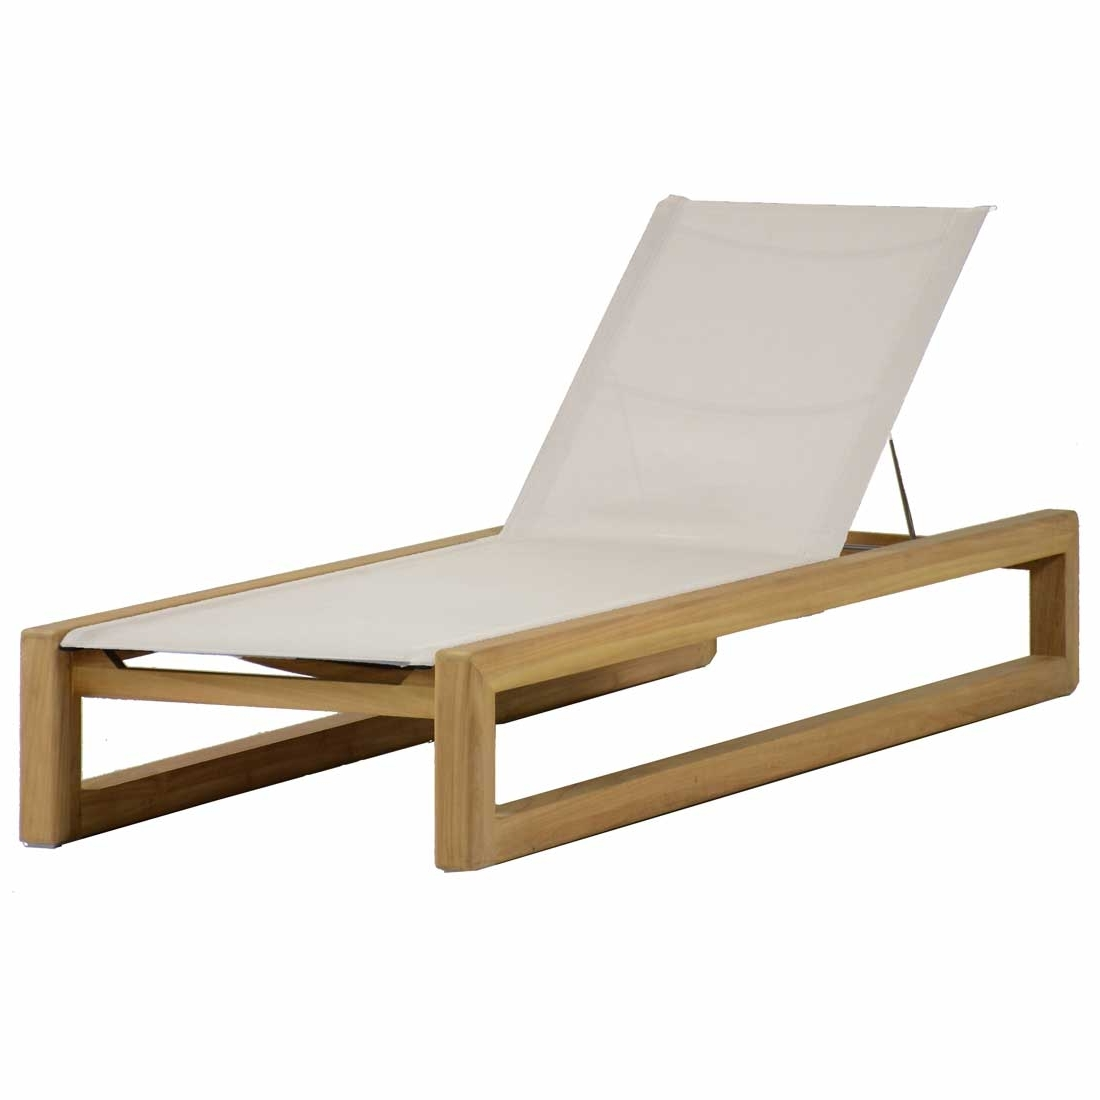 Bali Teak Chaise Lounge – Summer Classics In Popular Teak Chaise Lounges (View 4 of 15)